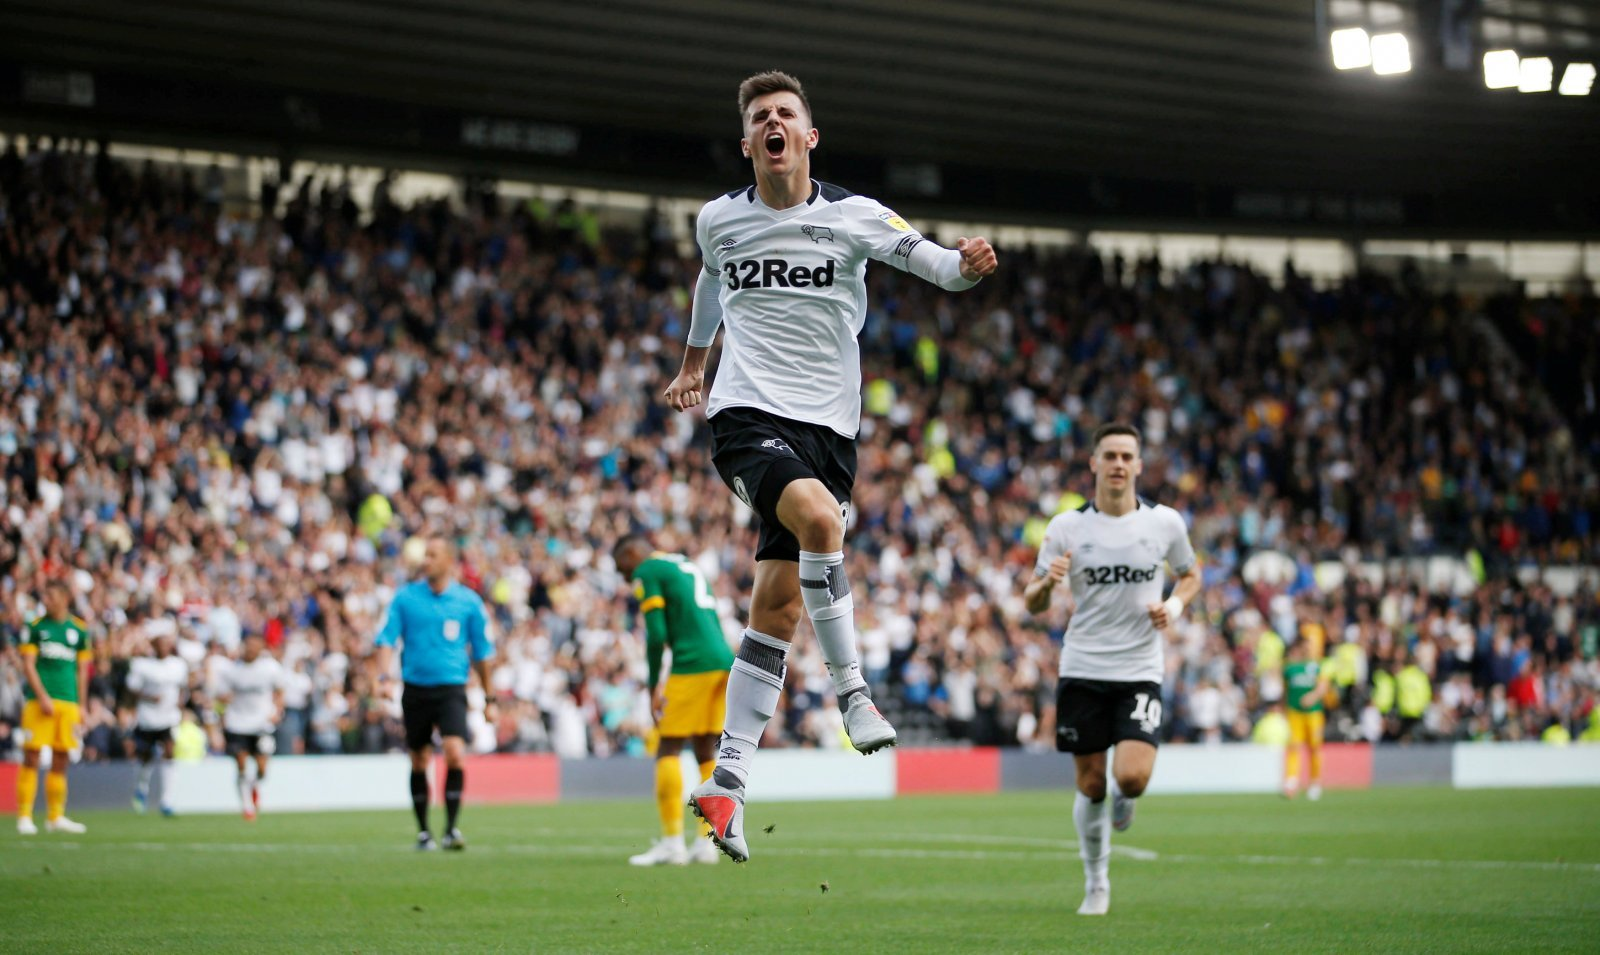 Opinion: Mason Mount is a step ahead of Phil Foden right now